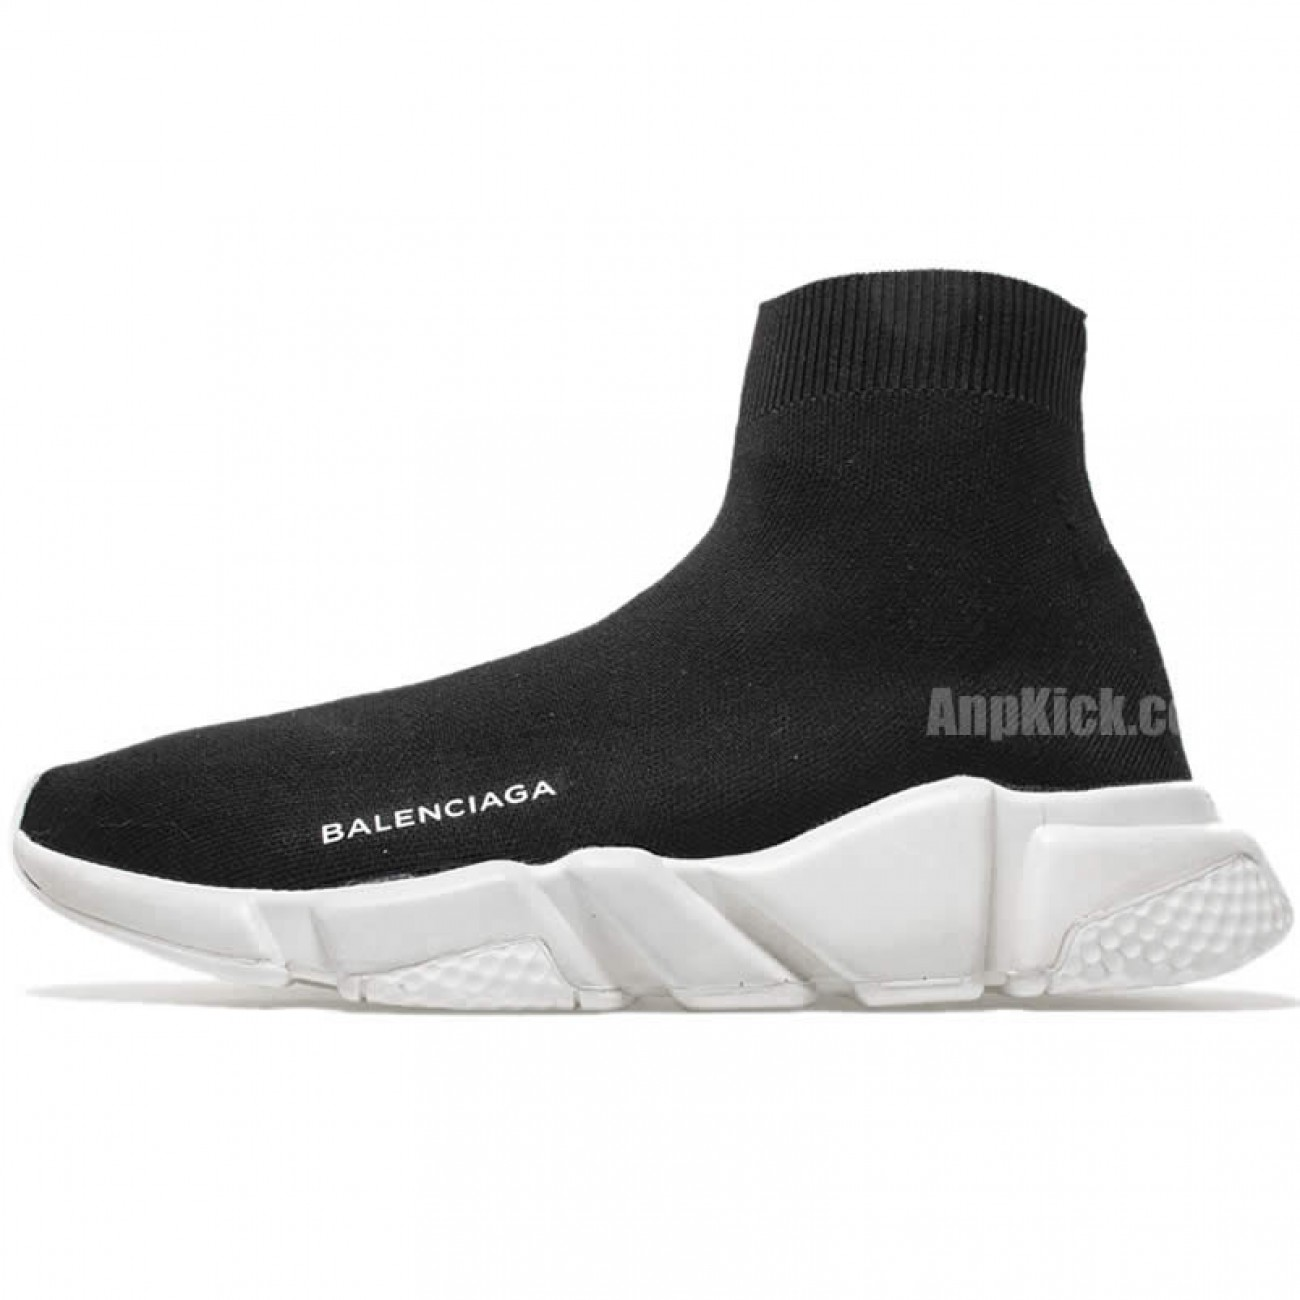 balenciaga runners black